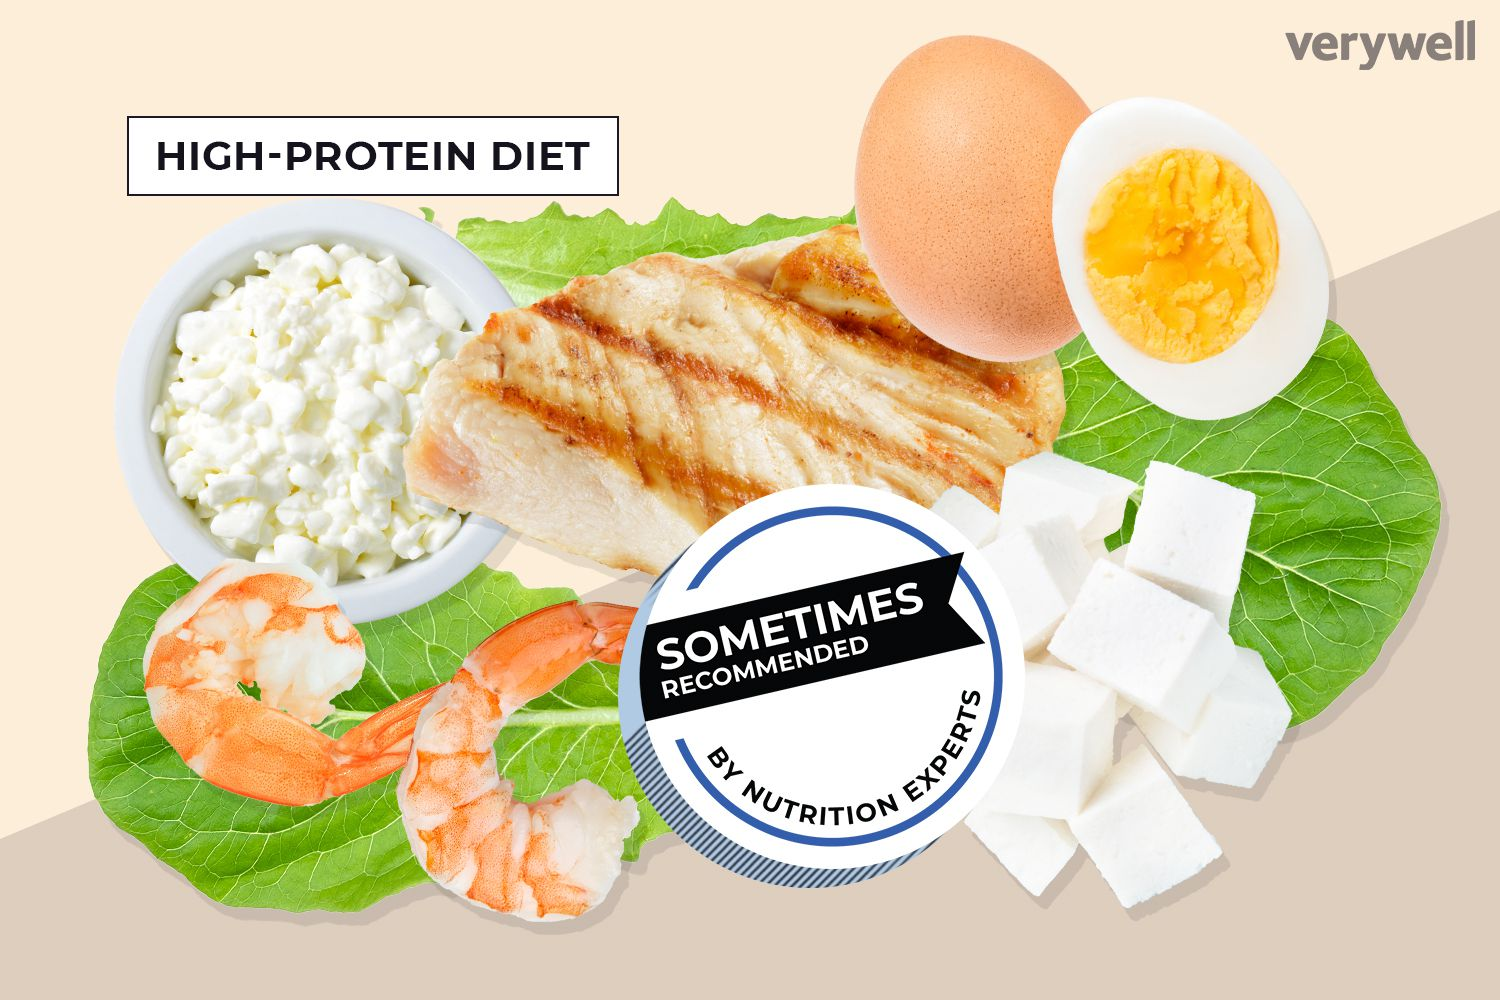 high protein restricting diet